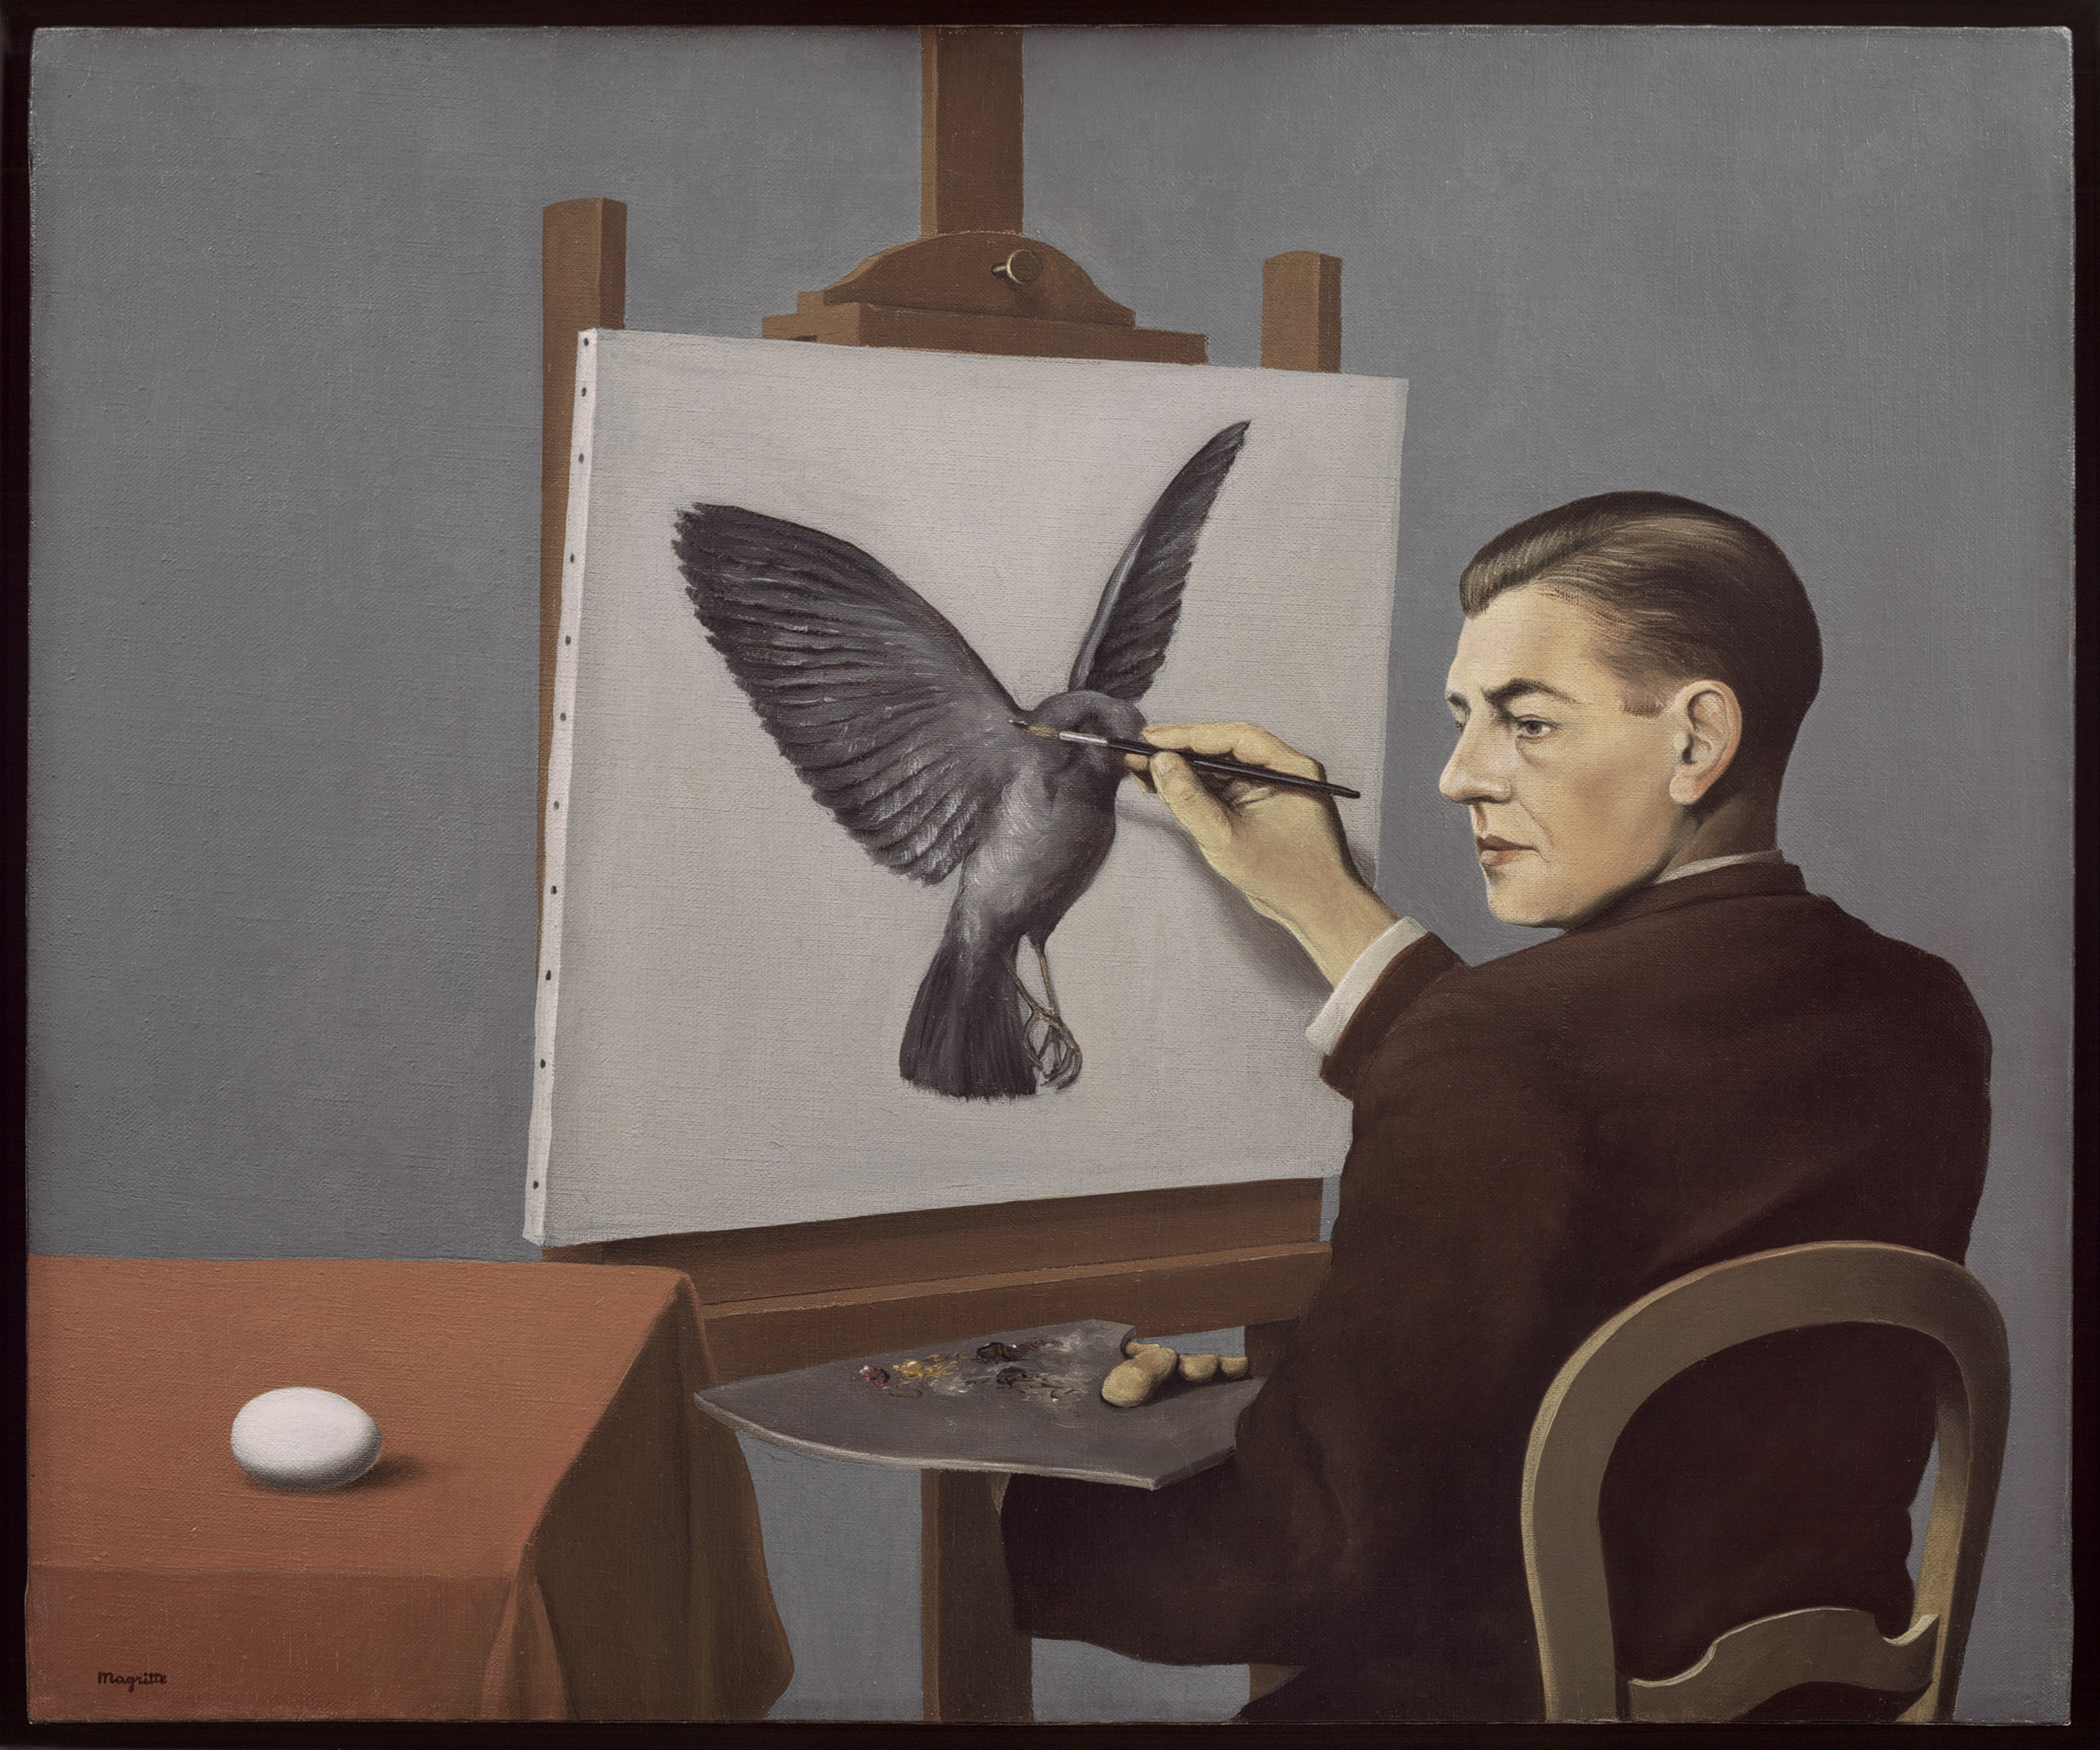 Clairvoyance, Rene Magritte